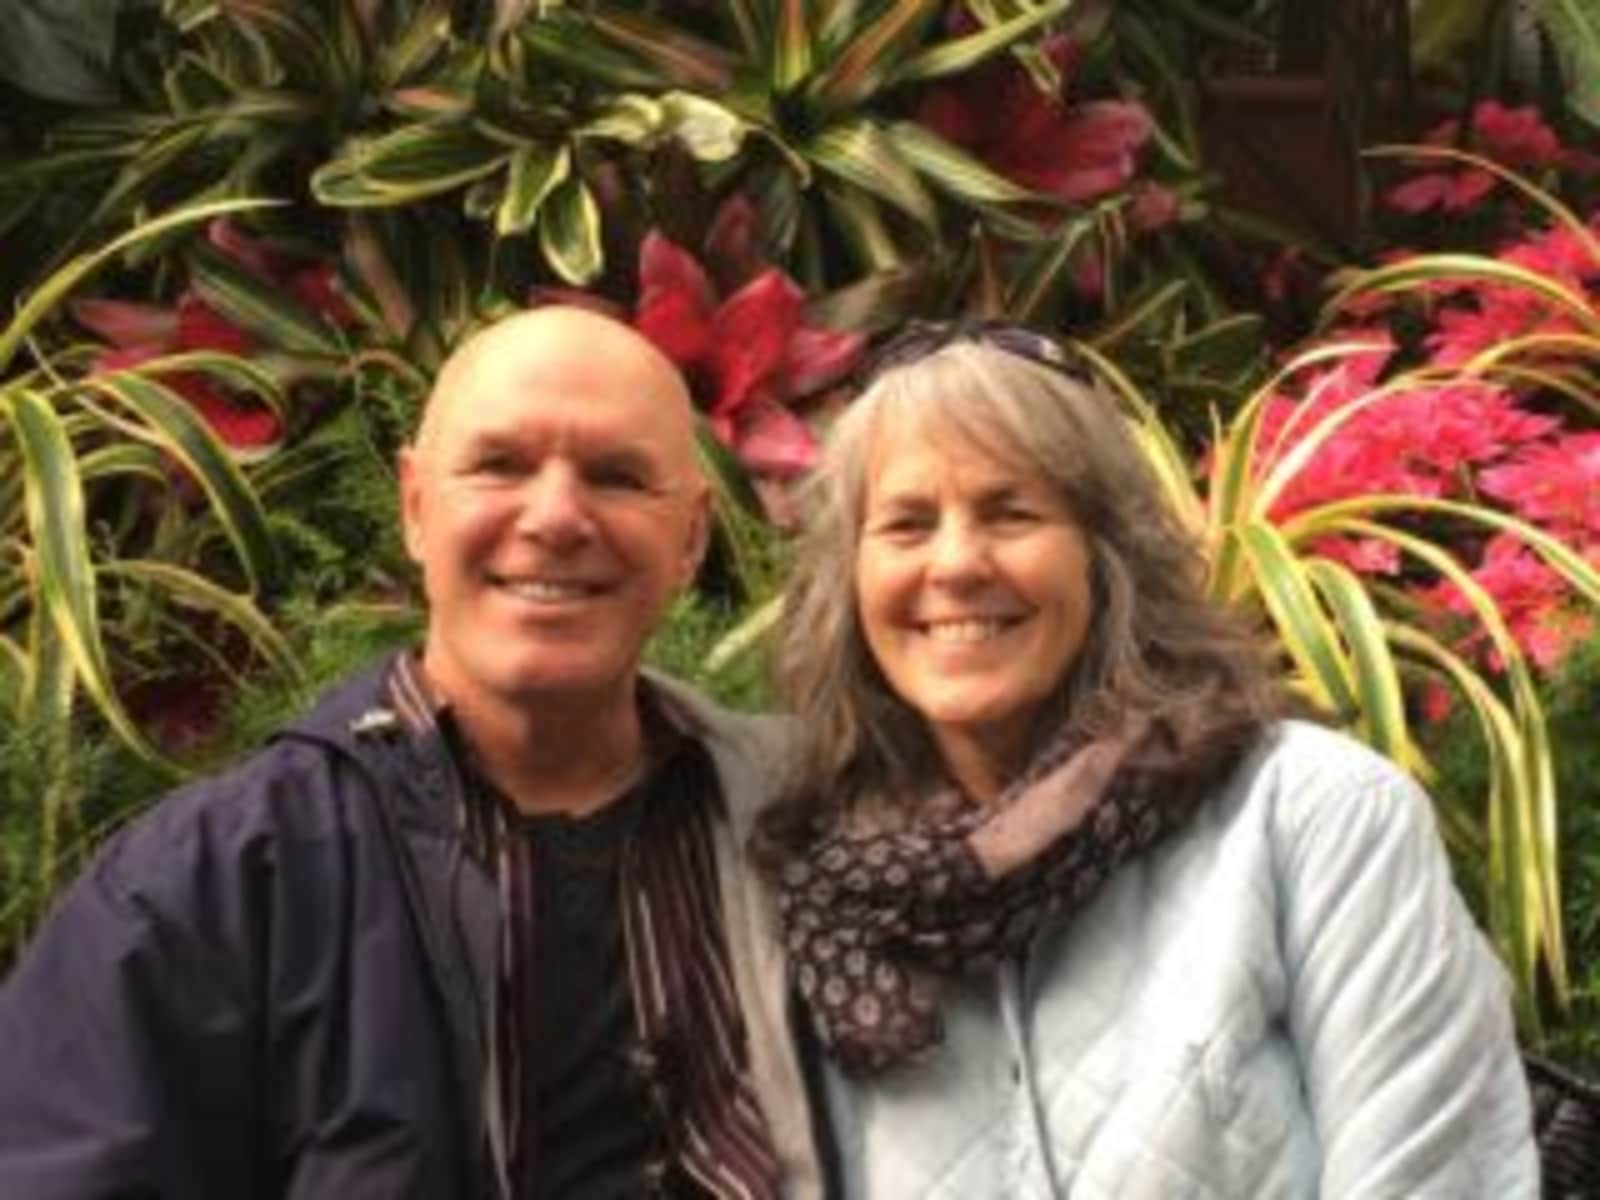 Jim and beatrice & Beatrice from Southern Pines, North Carolina, United States